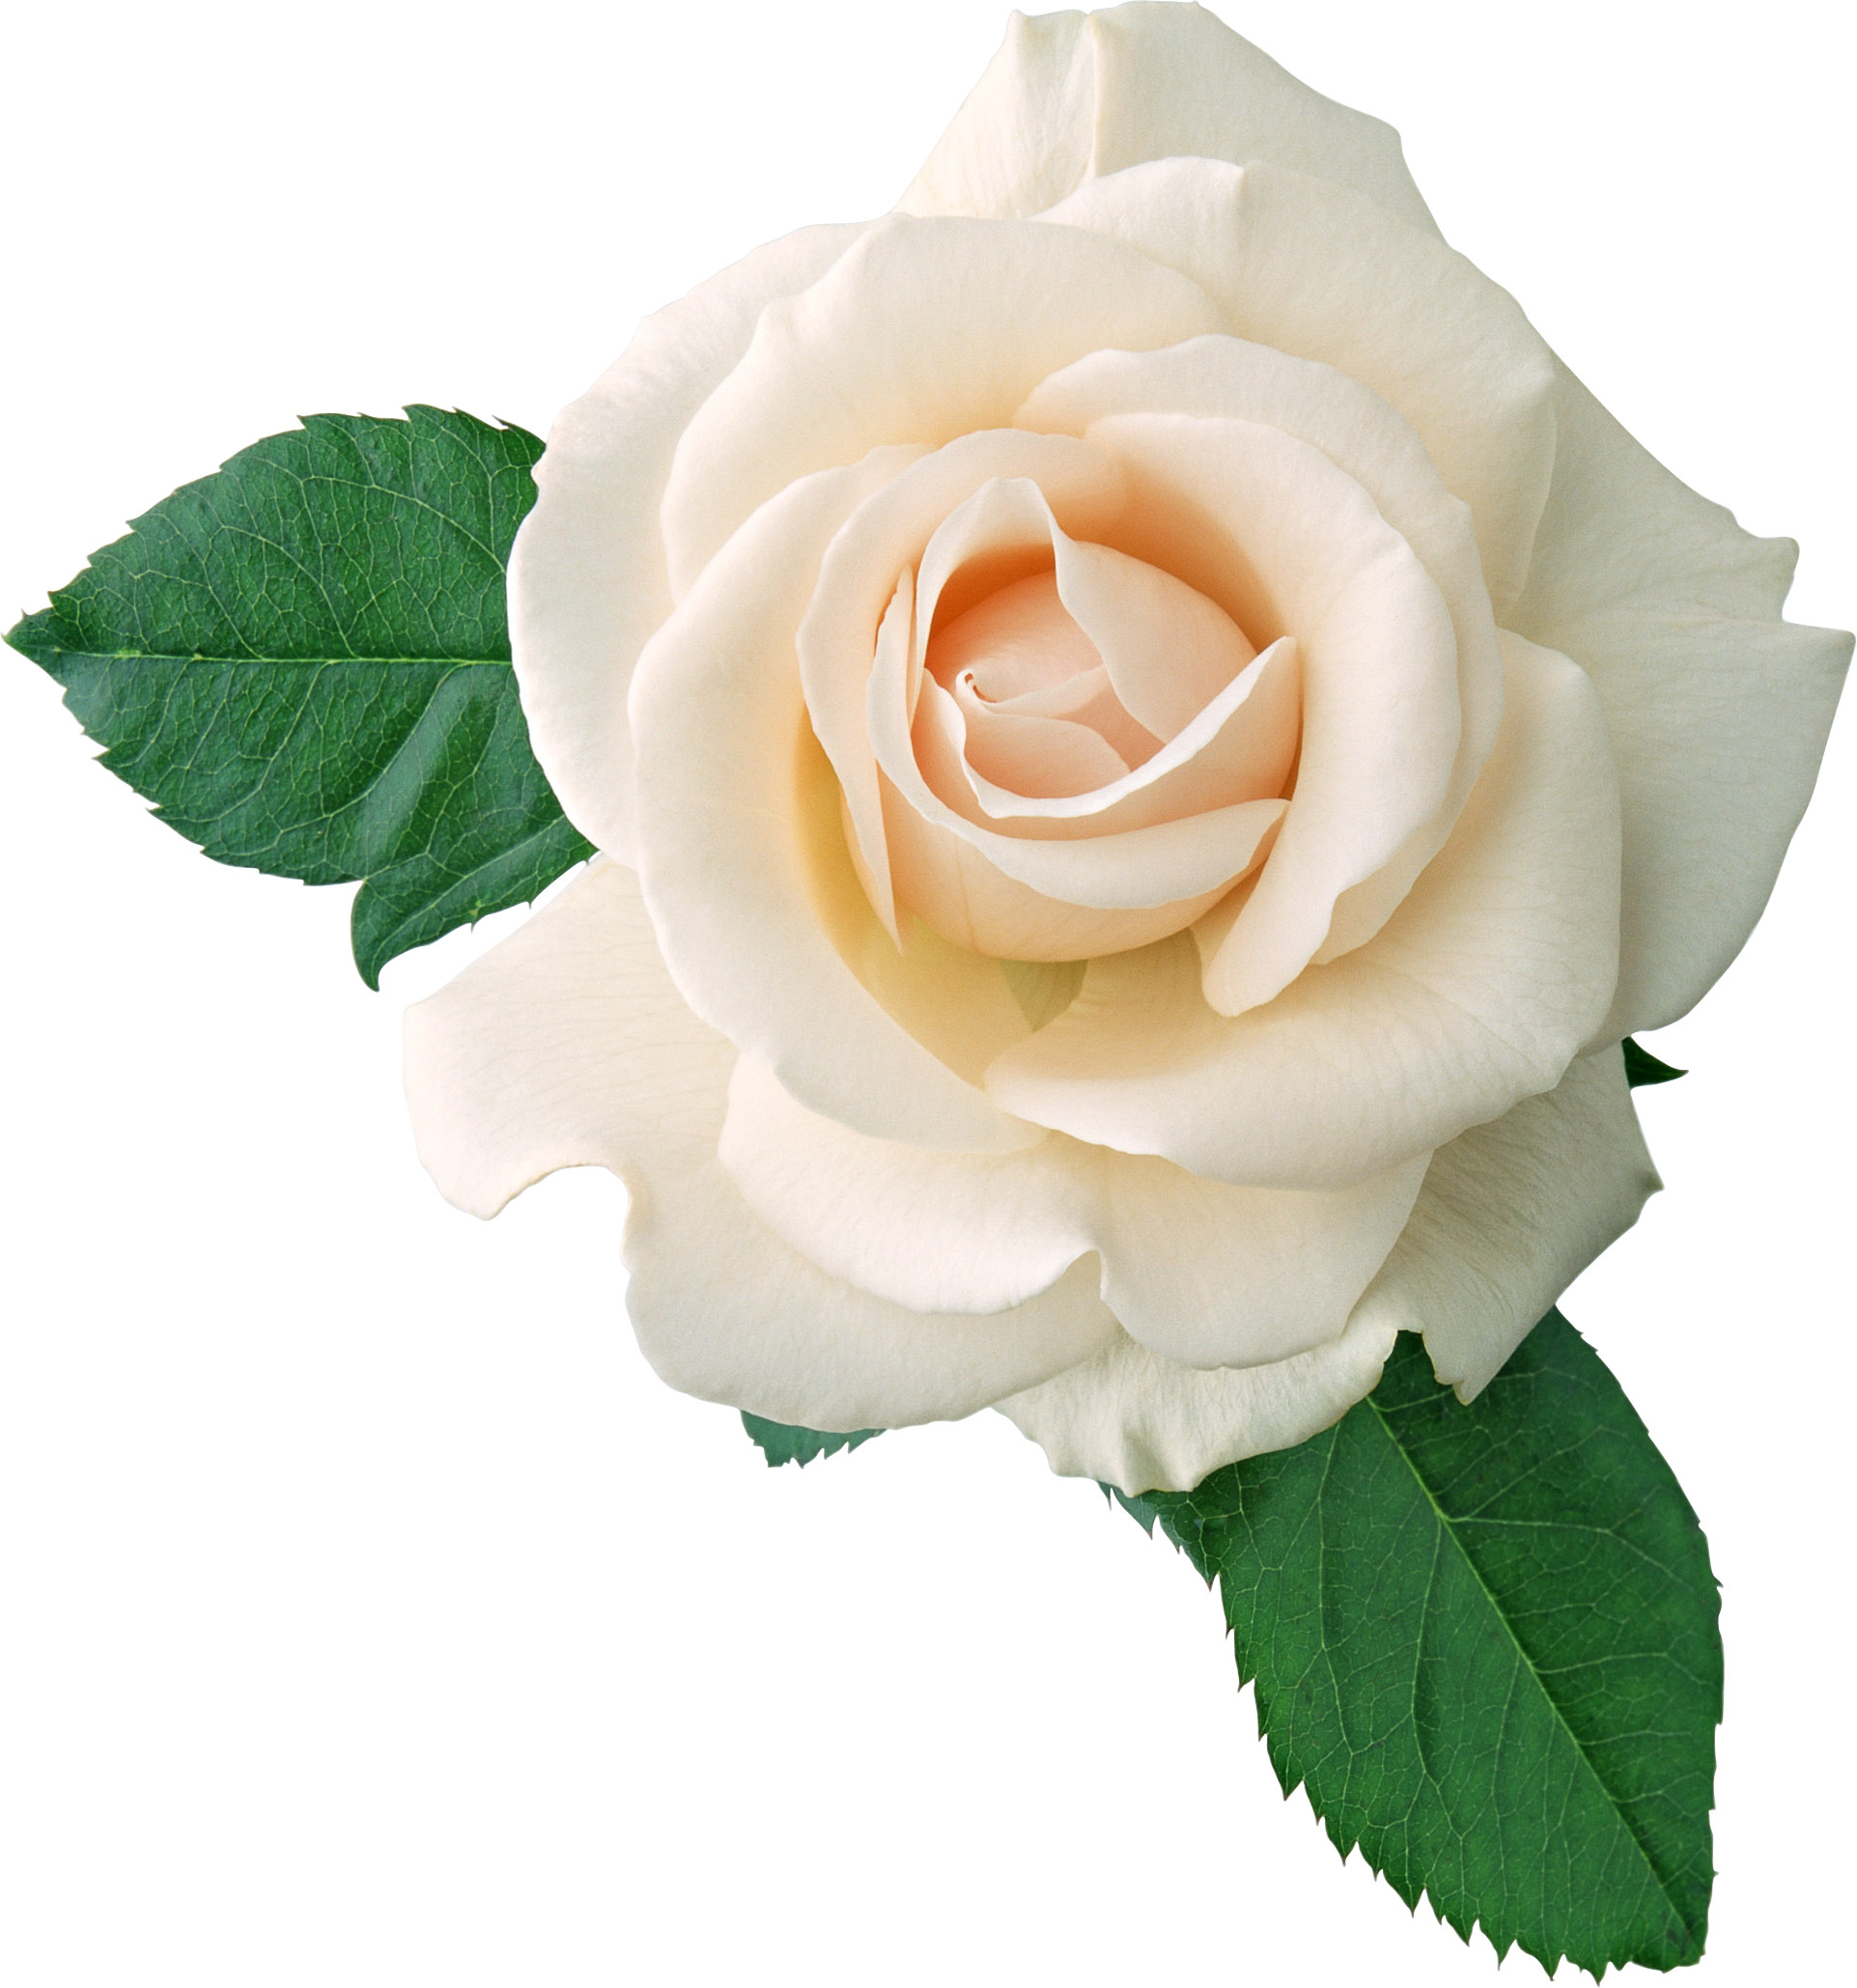 Rose Flower - Varieties and Types of Roses - TheFlowerExpert